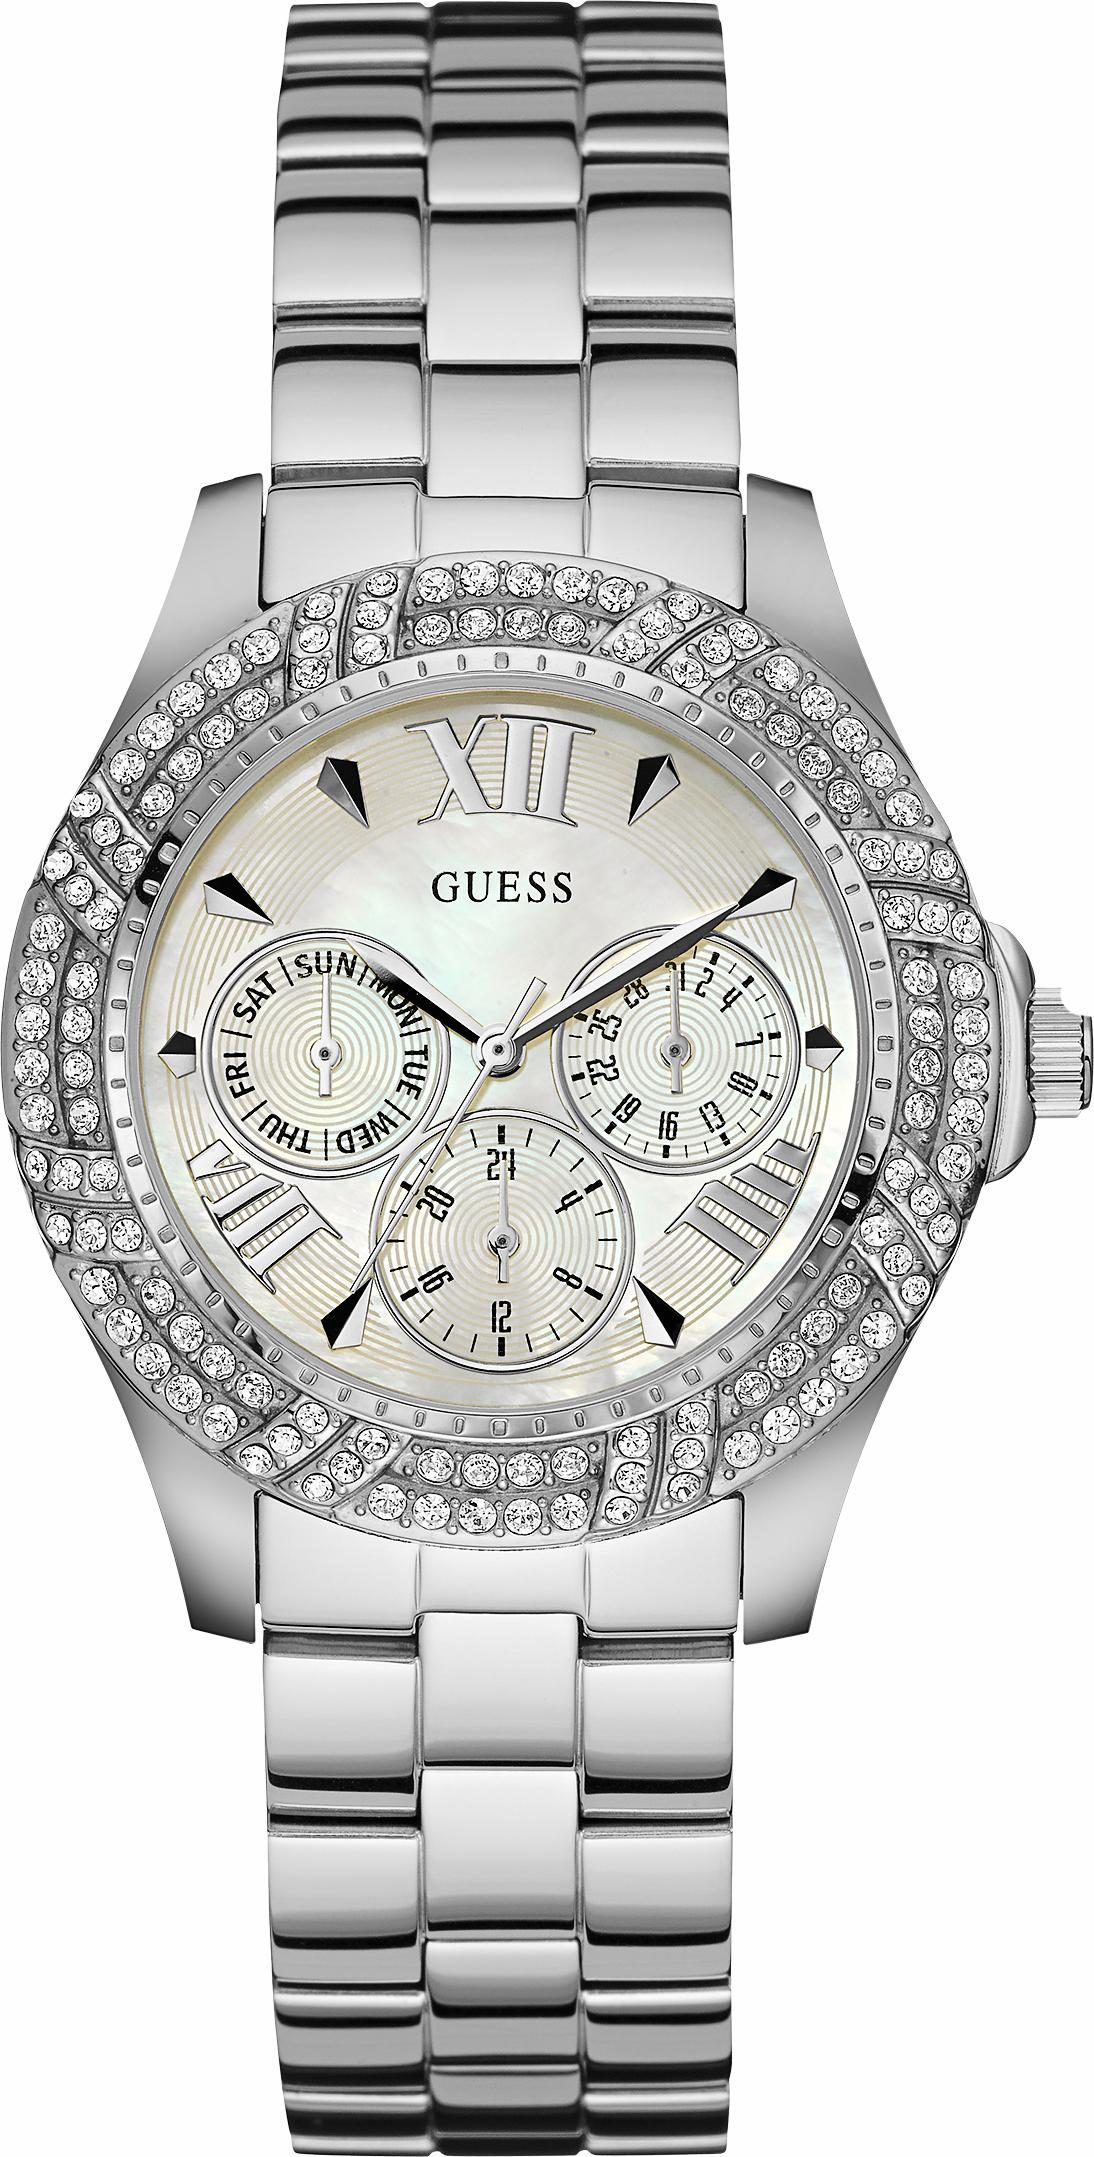 Guess Multifunktionsuhr »W0632L1«